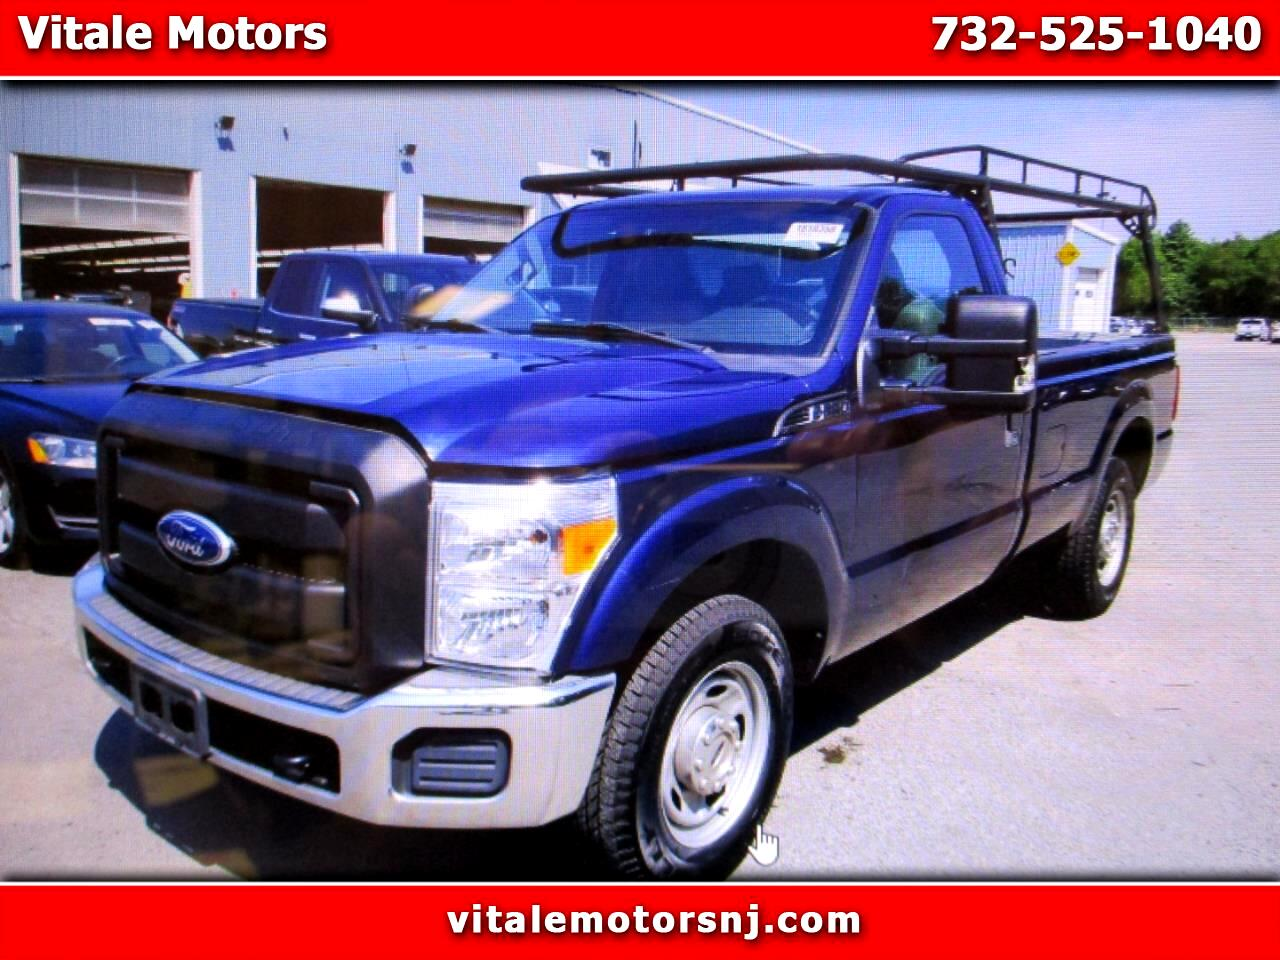 2011 Ford F-250 SD REG CAB LONG BED W/ LIFT GATE